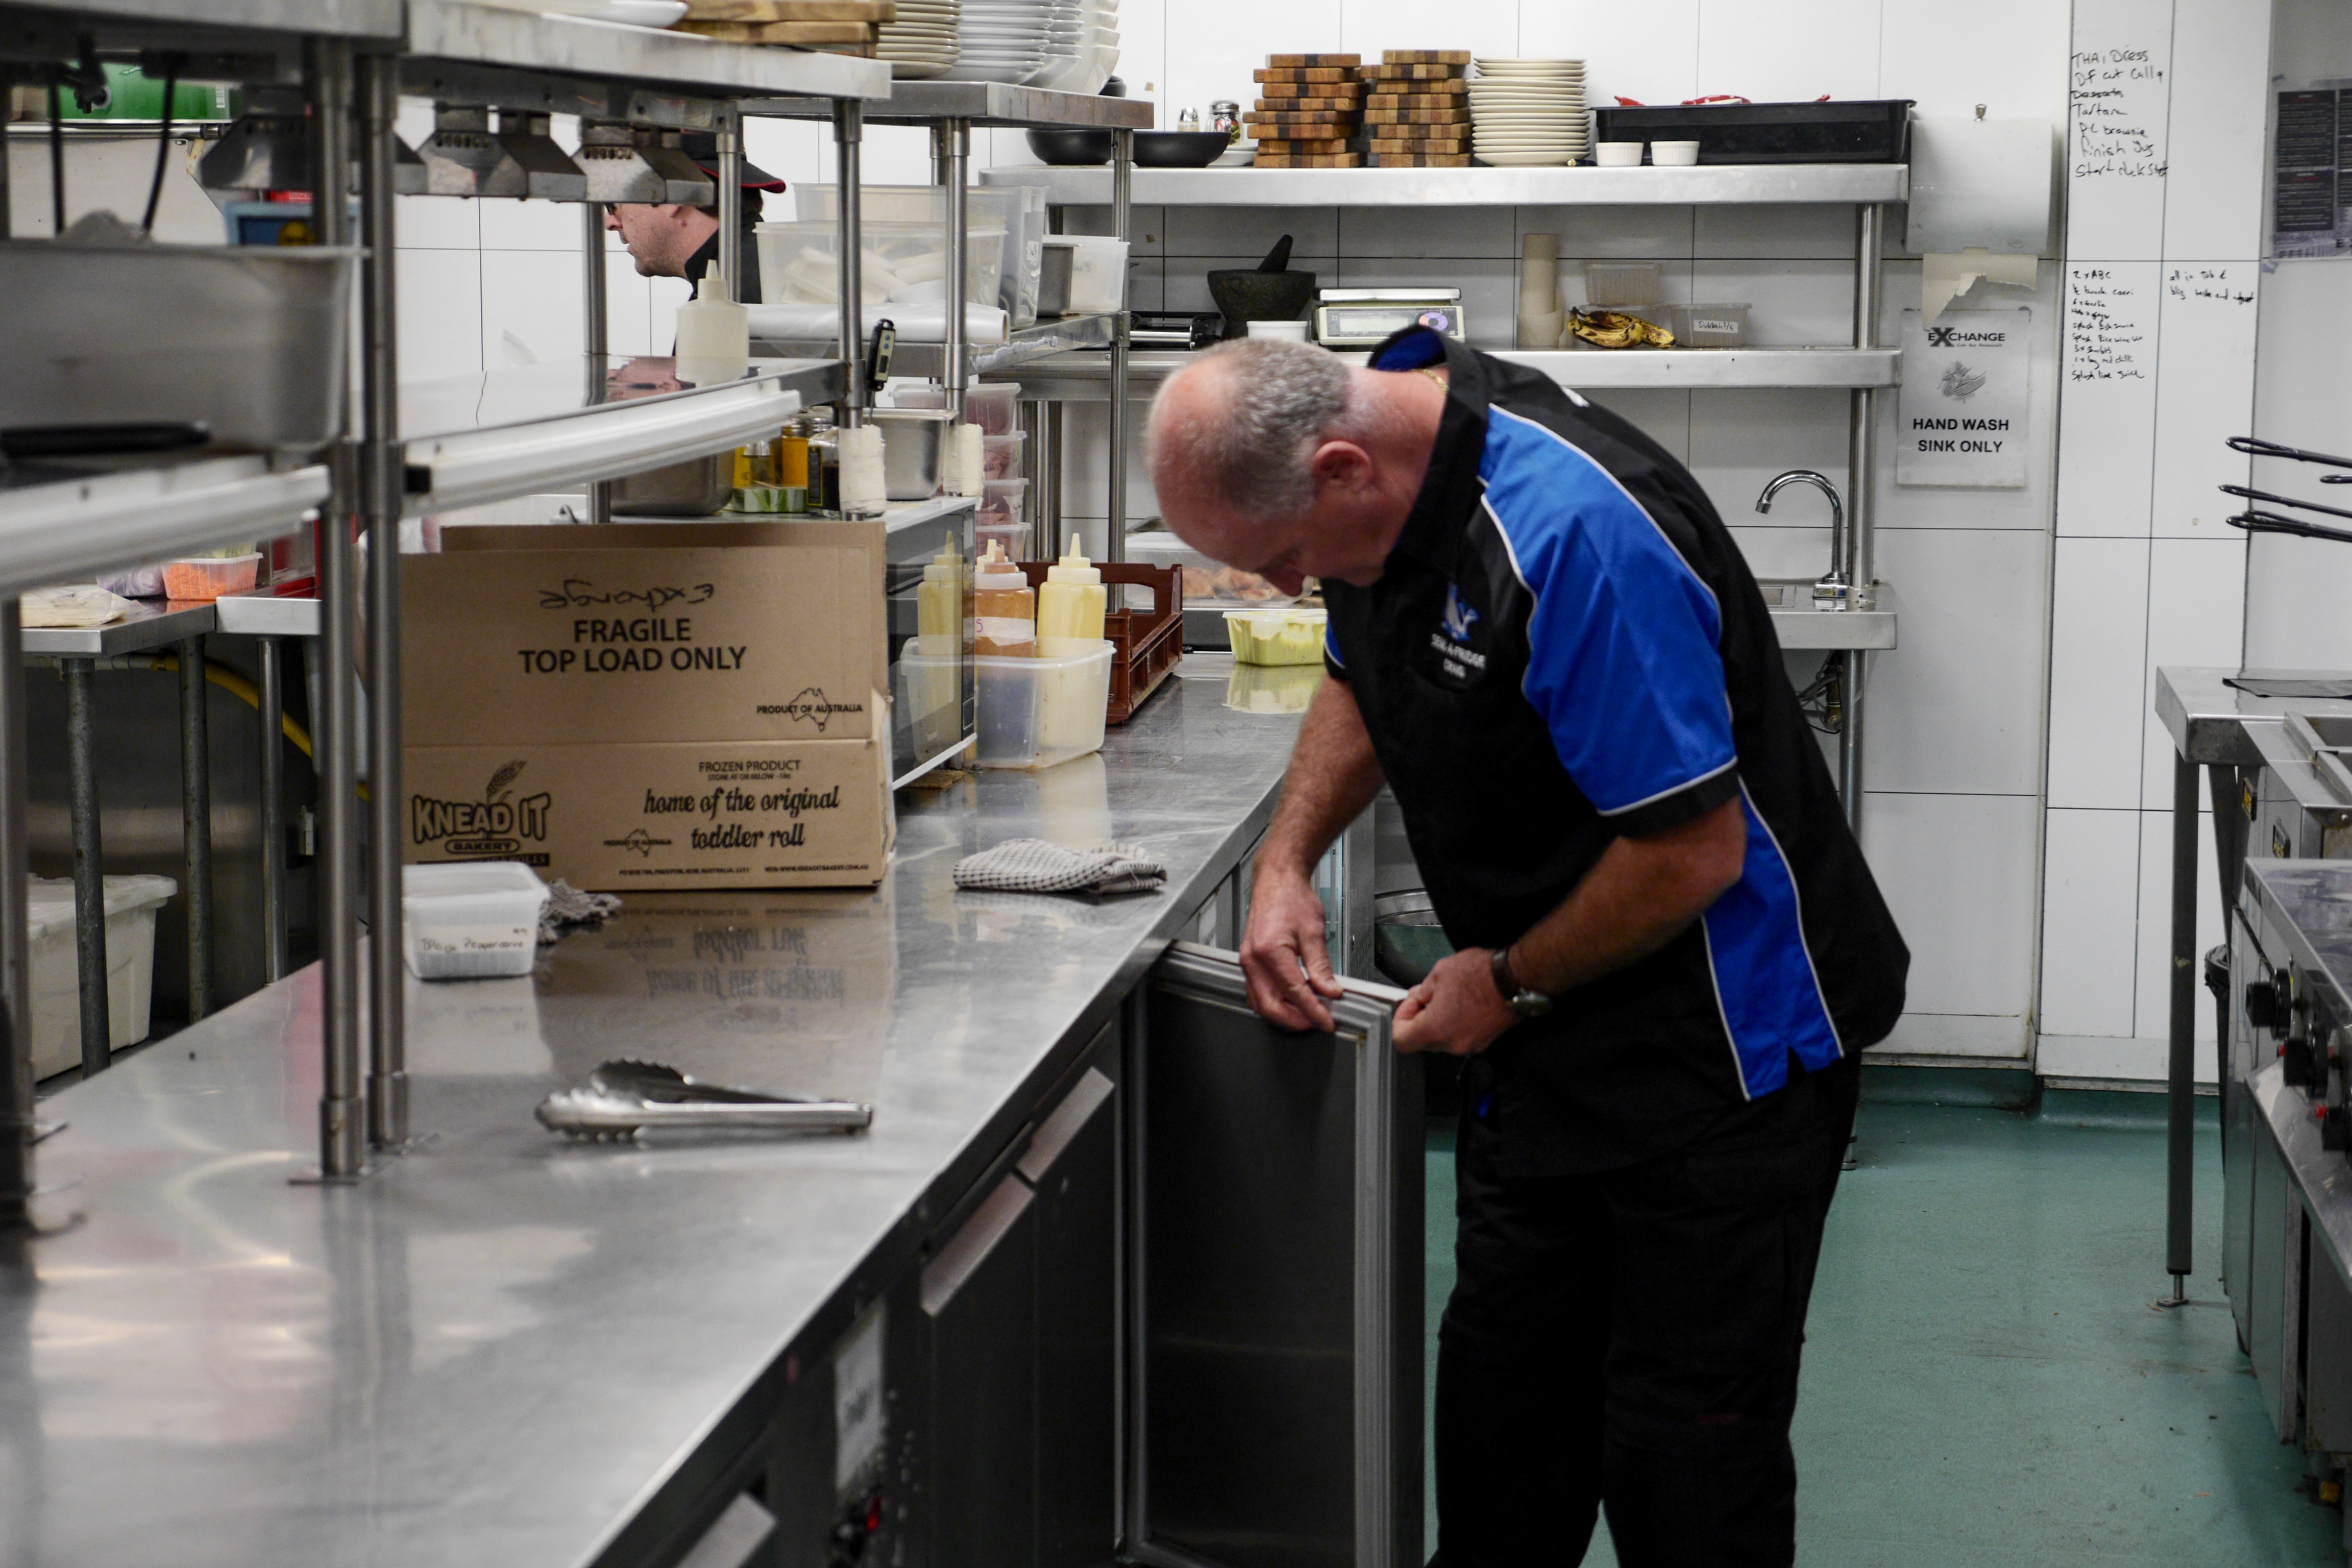 seal-a-fridge-franchise-adelaide-service-industry-to-cafes-restaurants-6